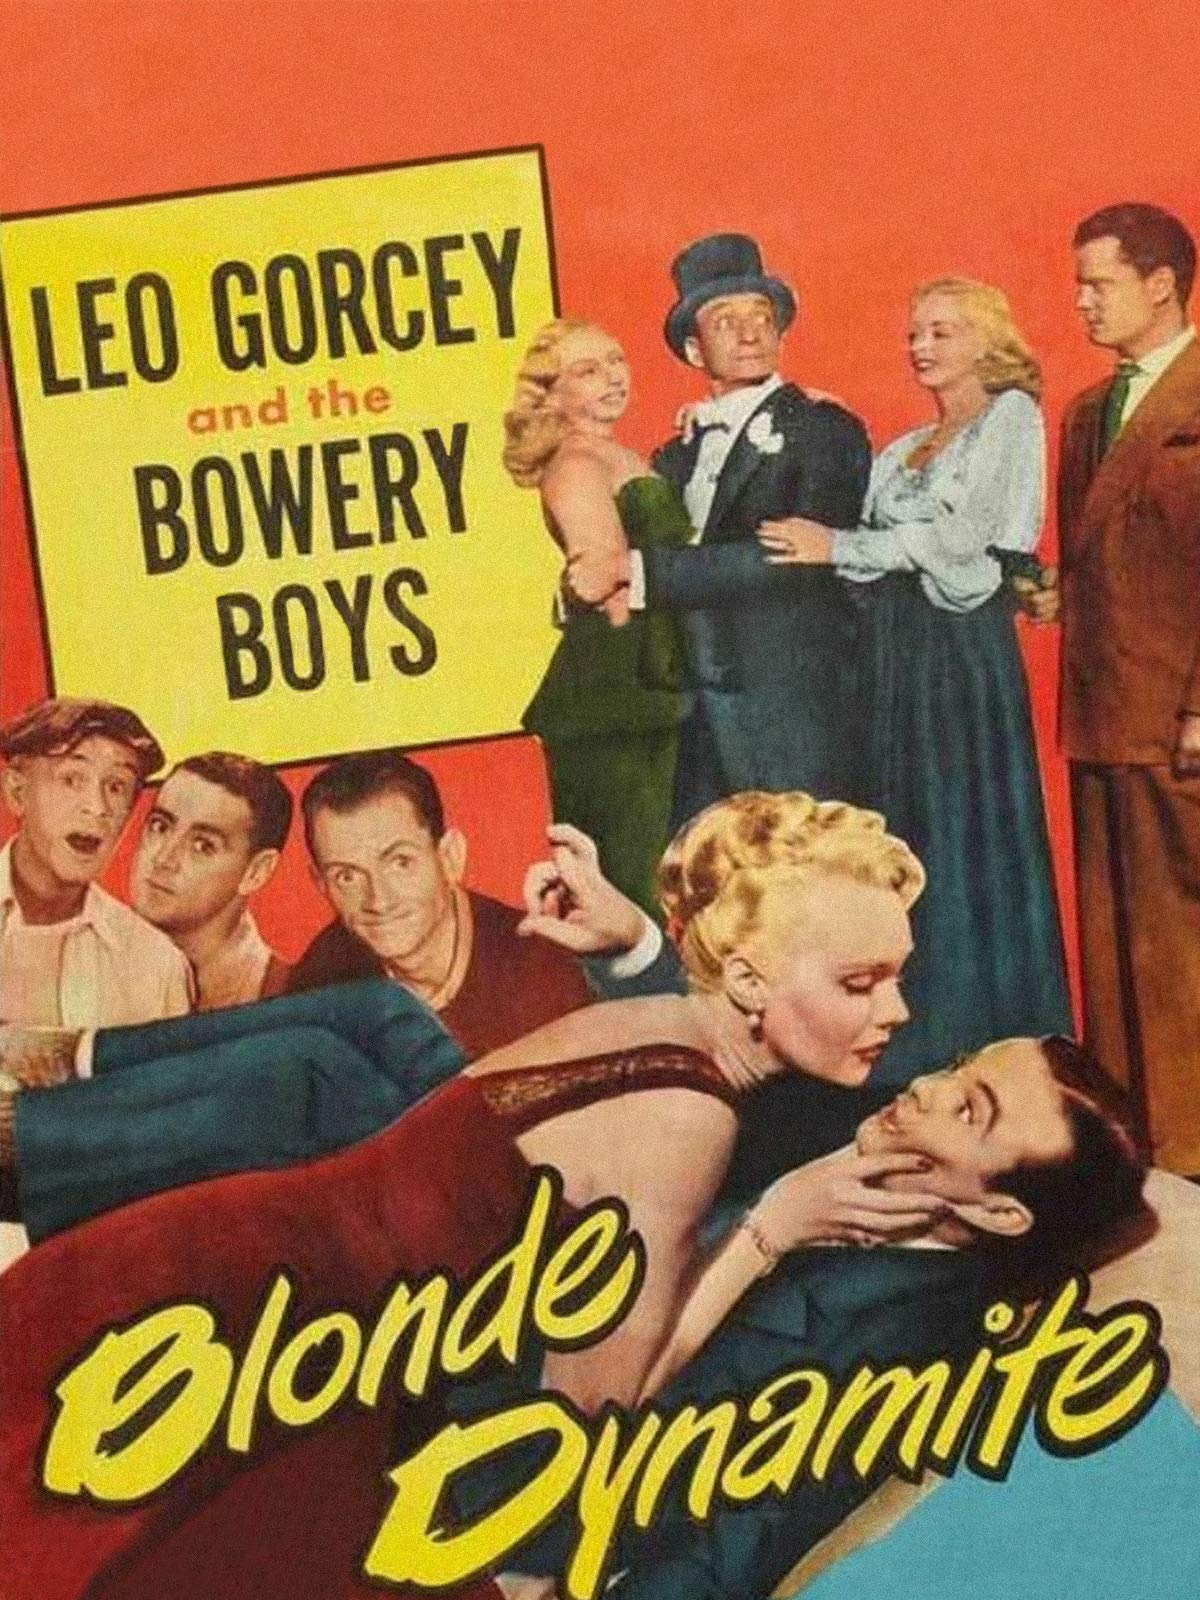 Blonde Dynamite - Leo Gorcey & The Bowery Boys